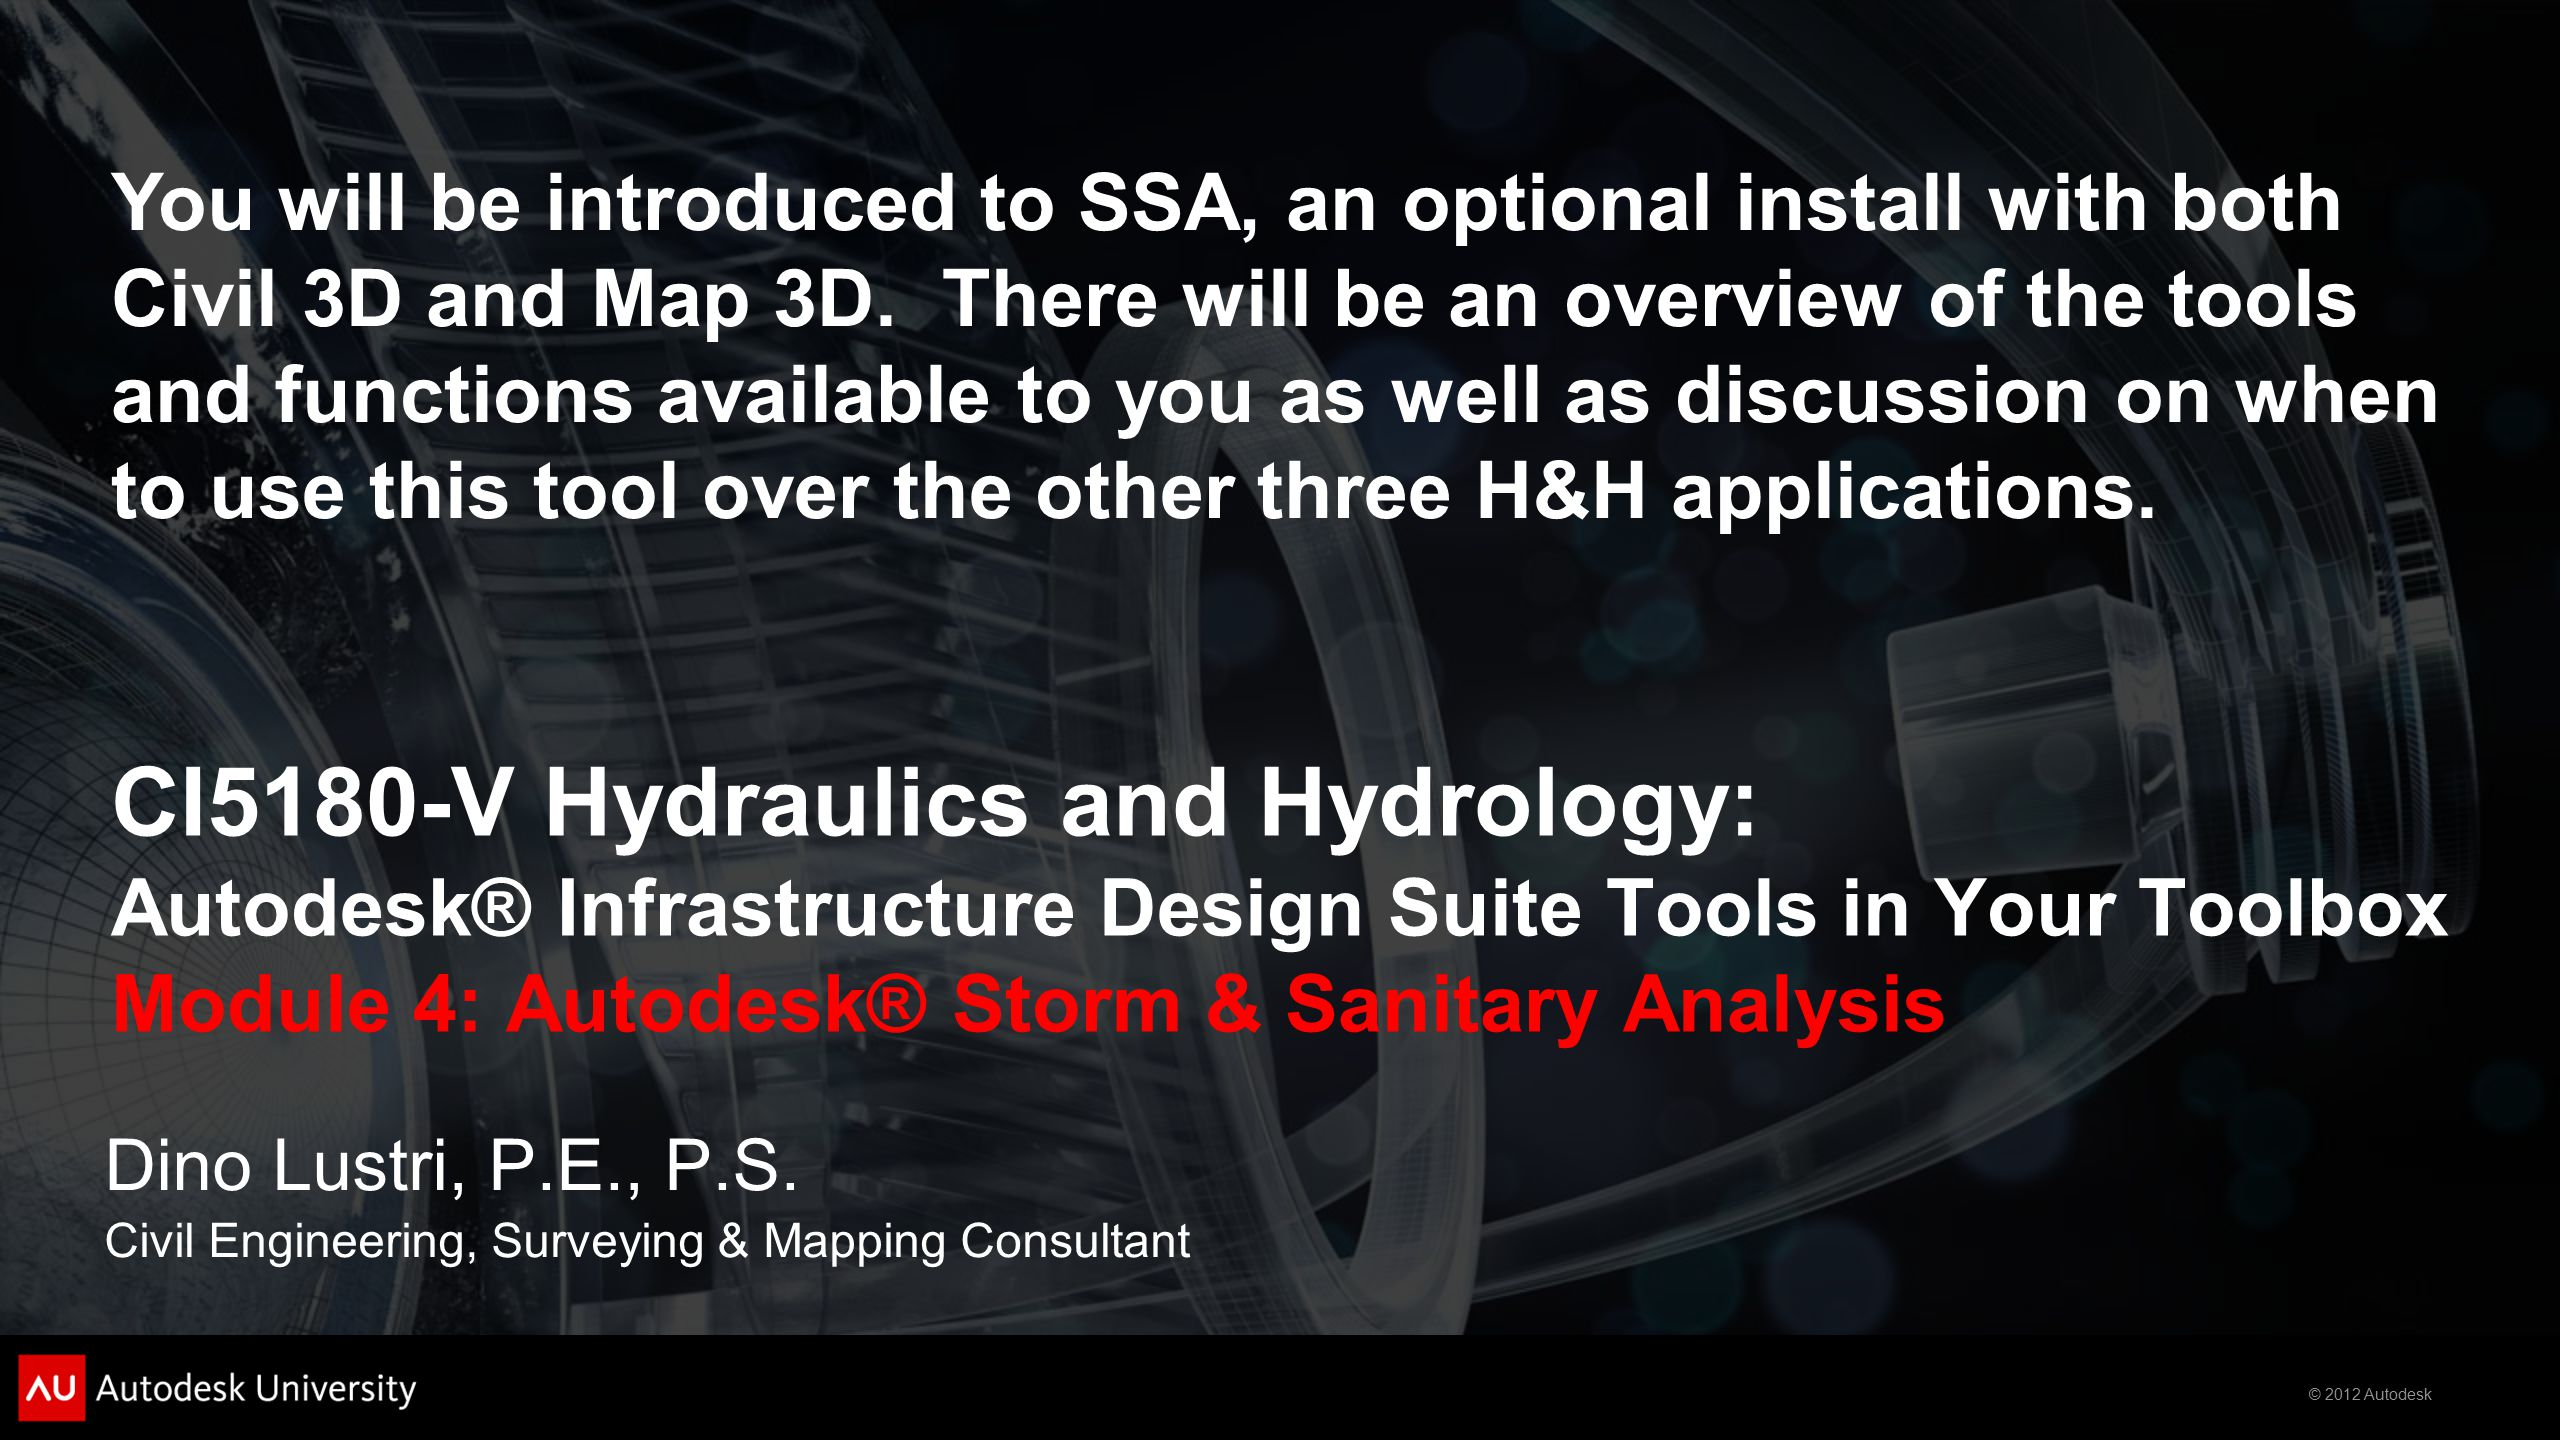 © 2012 Autodesk CI5180-V Hydraulics and Hydrology: Autodesk® Infrastructure Design Suite Tools in Your Toolbox Module 4: Autodesk® Storm & Sanitary Analysis Dino Lustri, P.E., P.S.